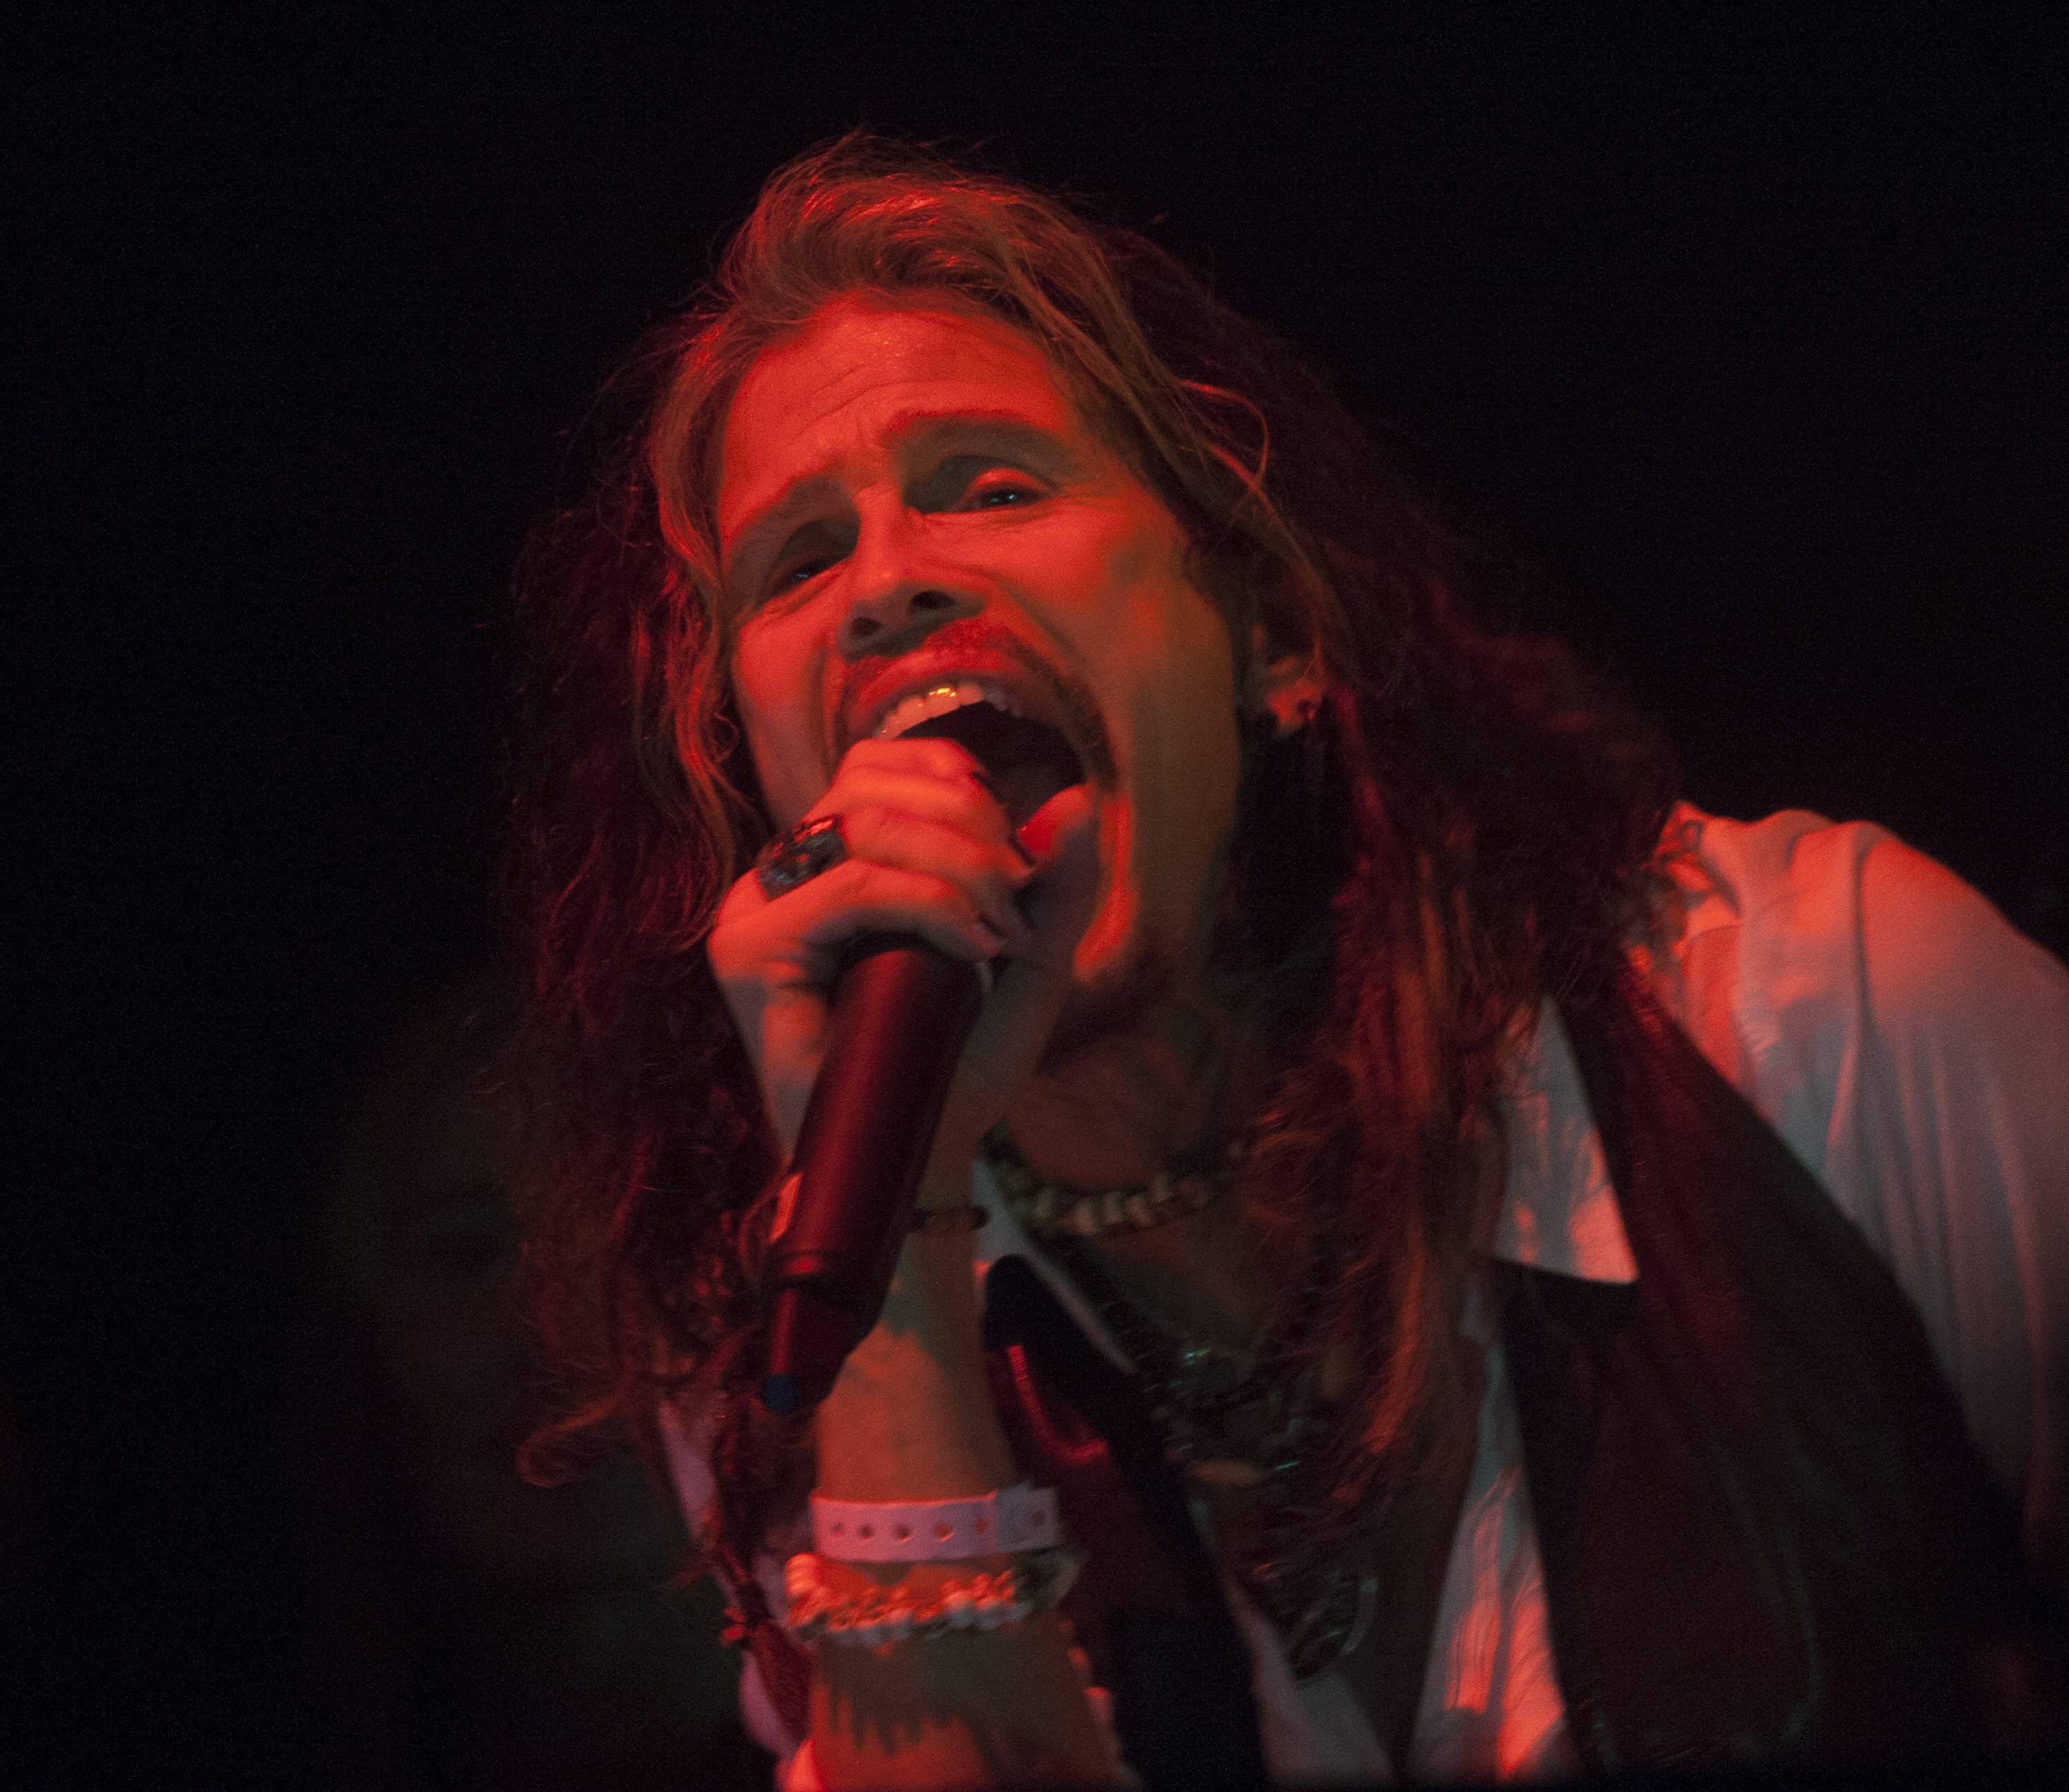 Steven Tyler Performing. 1 OAK LA. 1.23